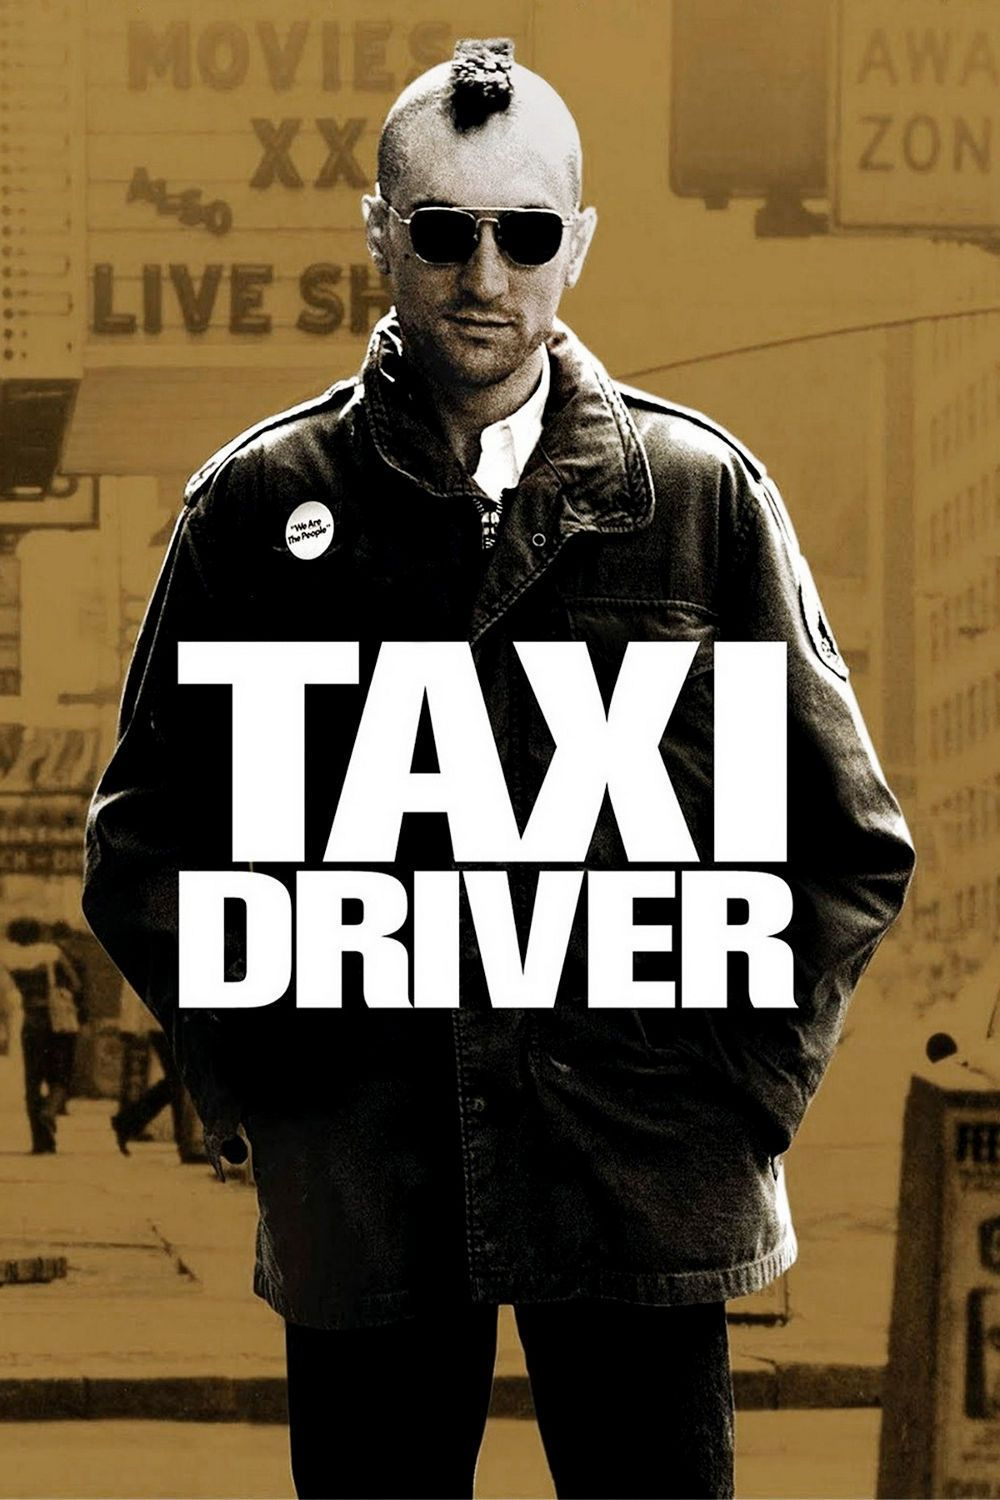 taxi driver poster Google Search Taxi driver